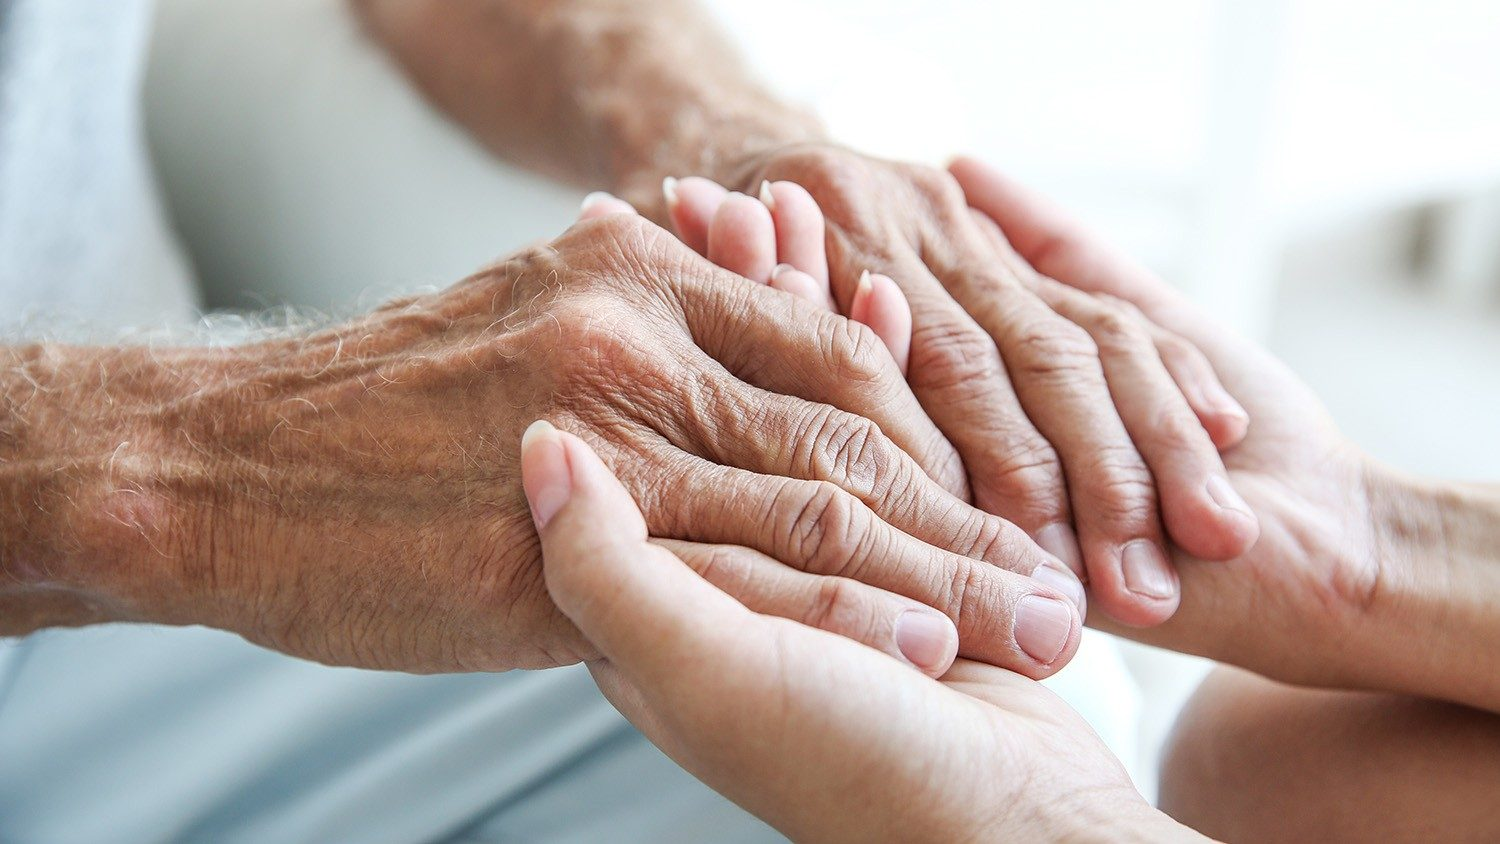 Covid-19: Guide released for end of life care during pandemic